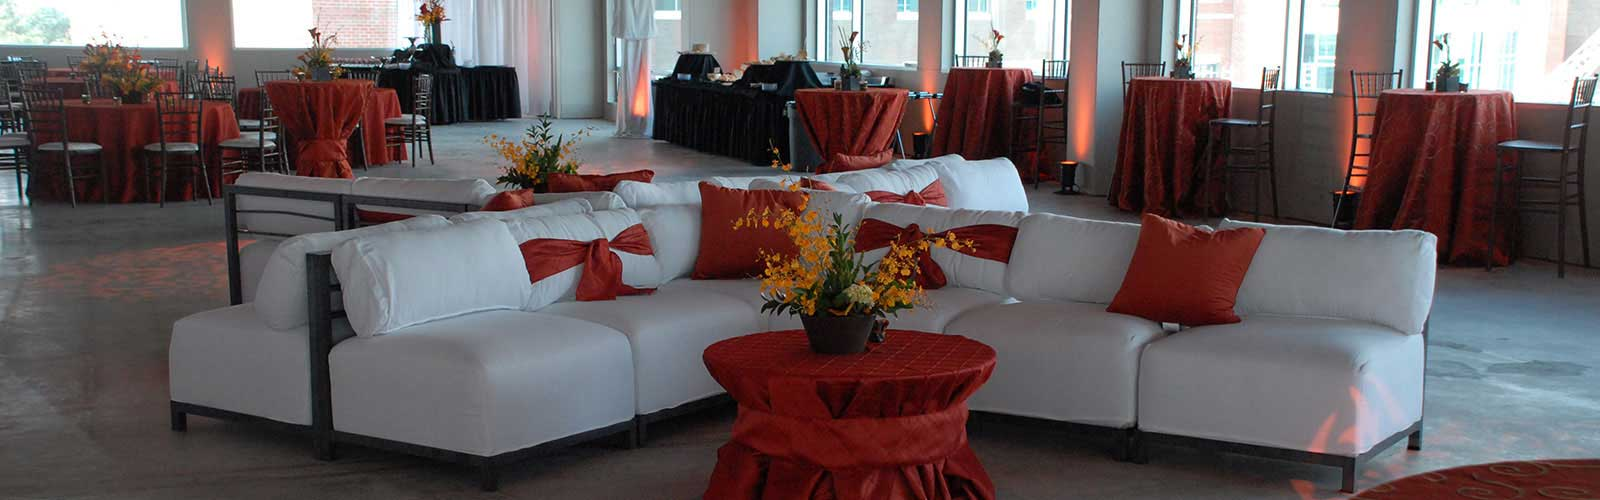 Event rentals in Middle Tennessee